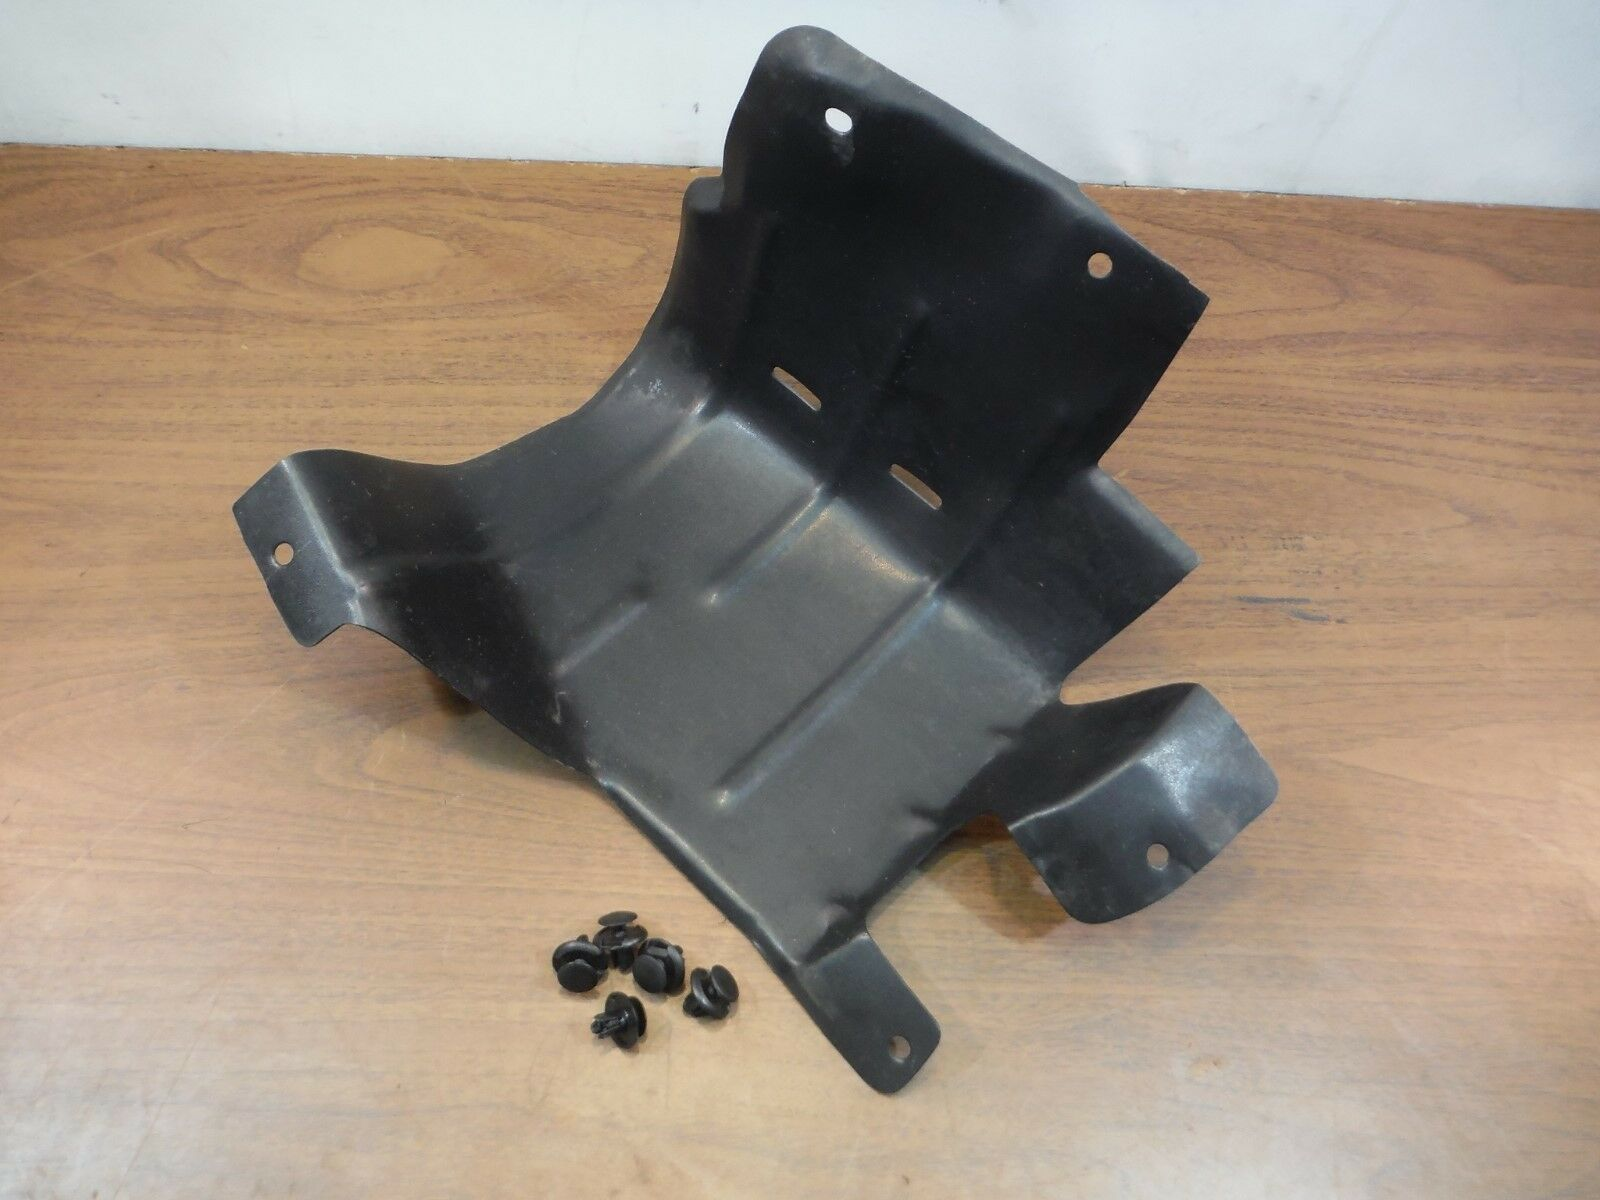 Miatamecca Used Fuel Filter Cover Shield 90 97 Mazda Miata Mx5 2006 Chevy Colorado Replacement 1 Of 4only 3 Available